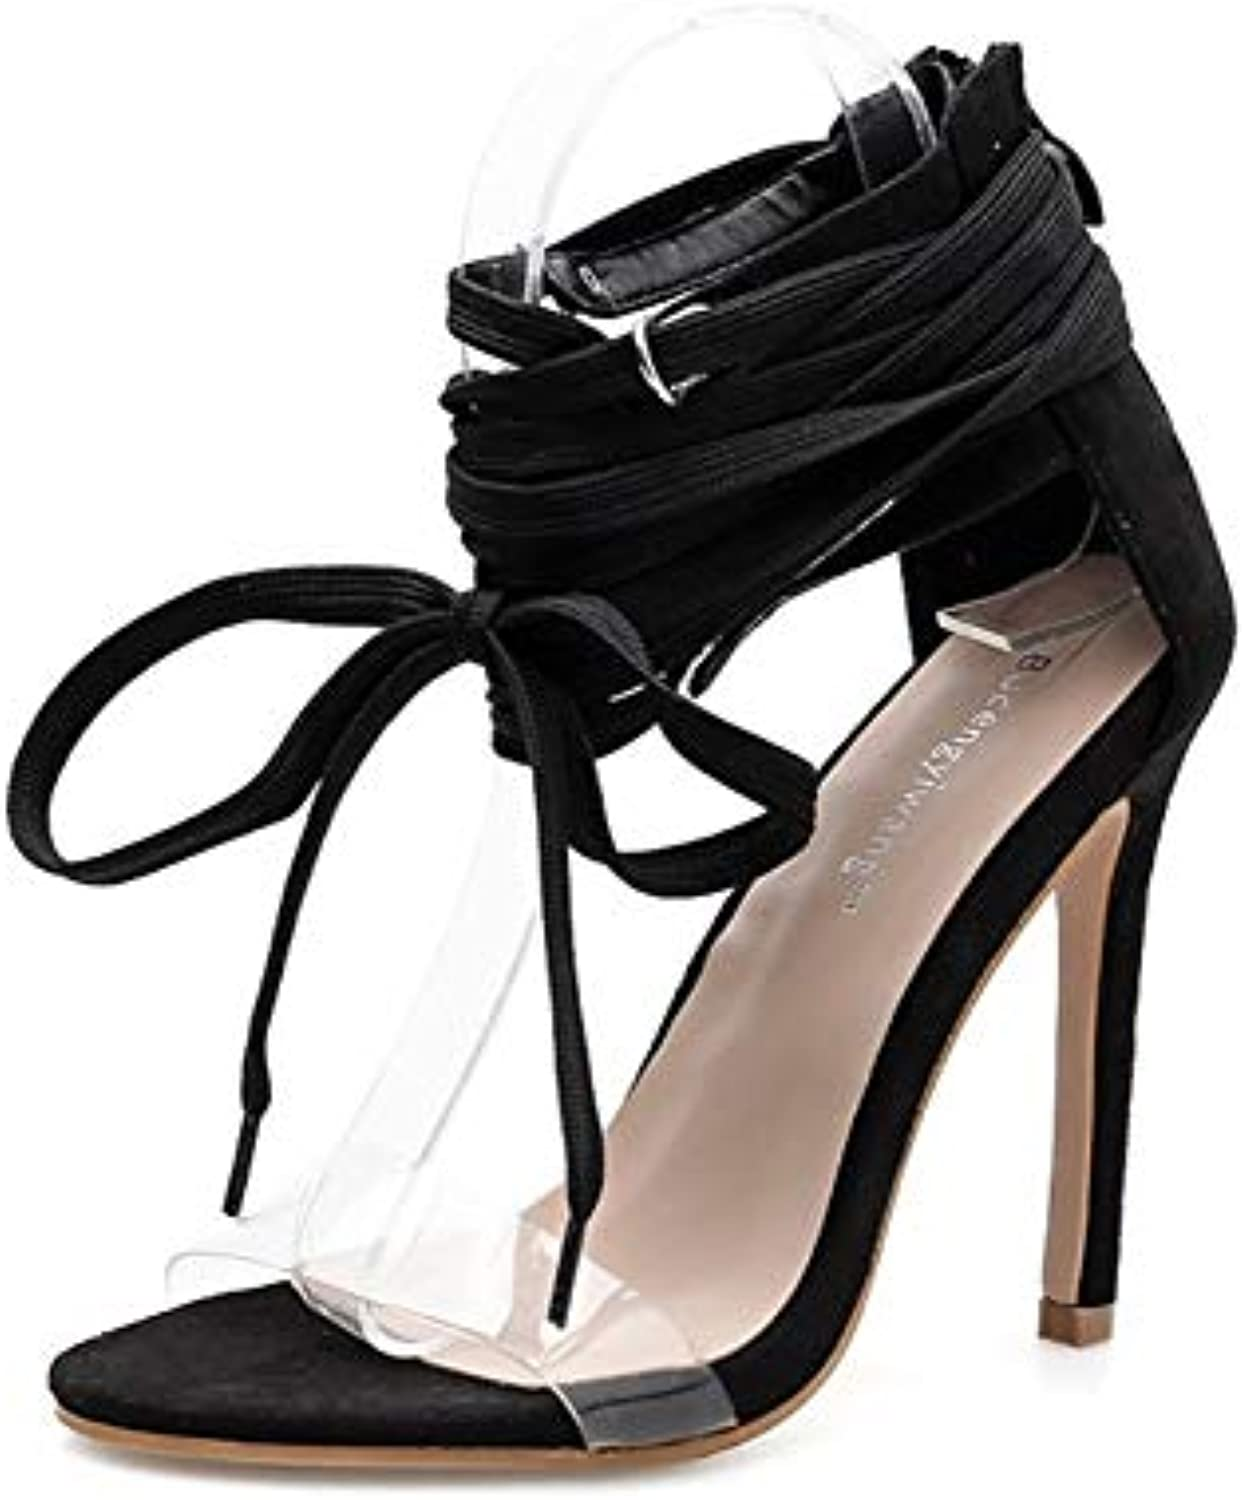 JQfashion Ladies'high Heels, Sexy Cross Straps, Slim-Heeled Sandals, Transparent PVC Roman shoes